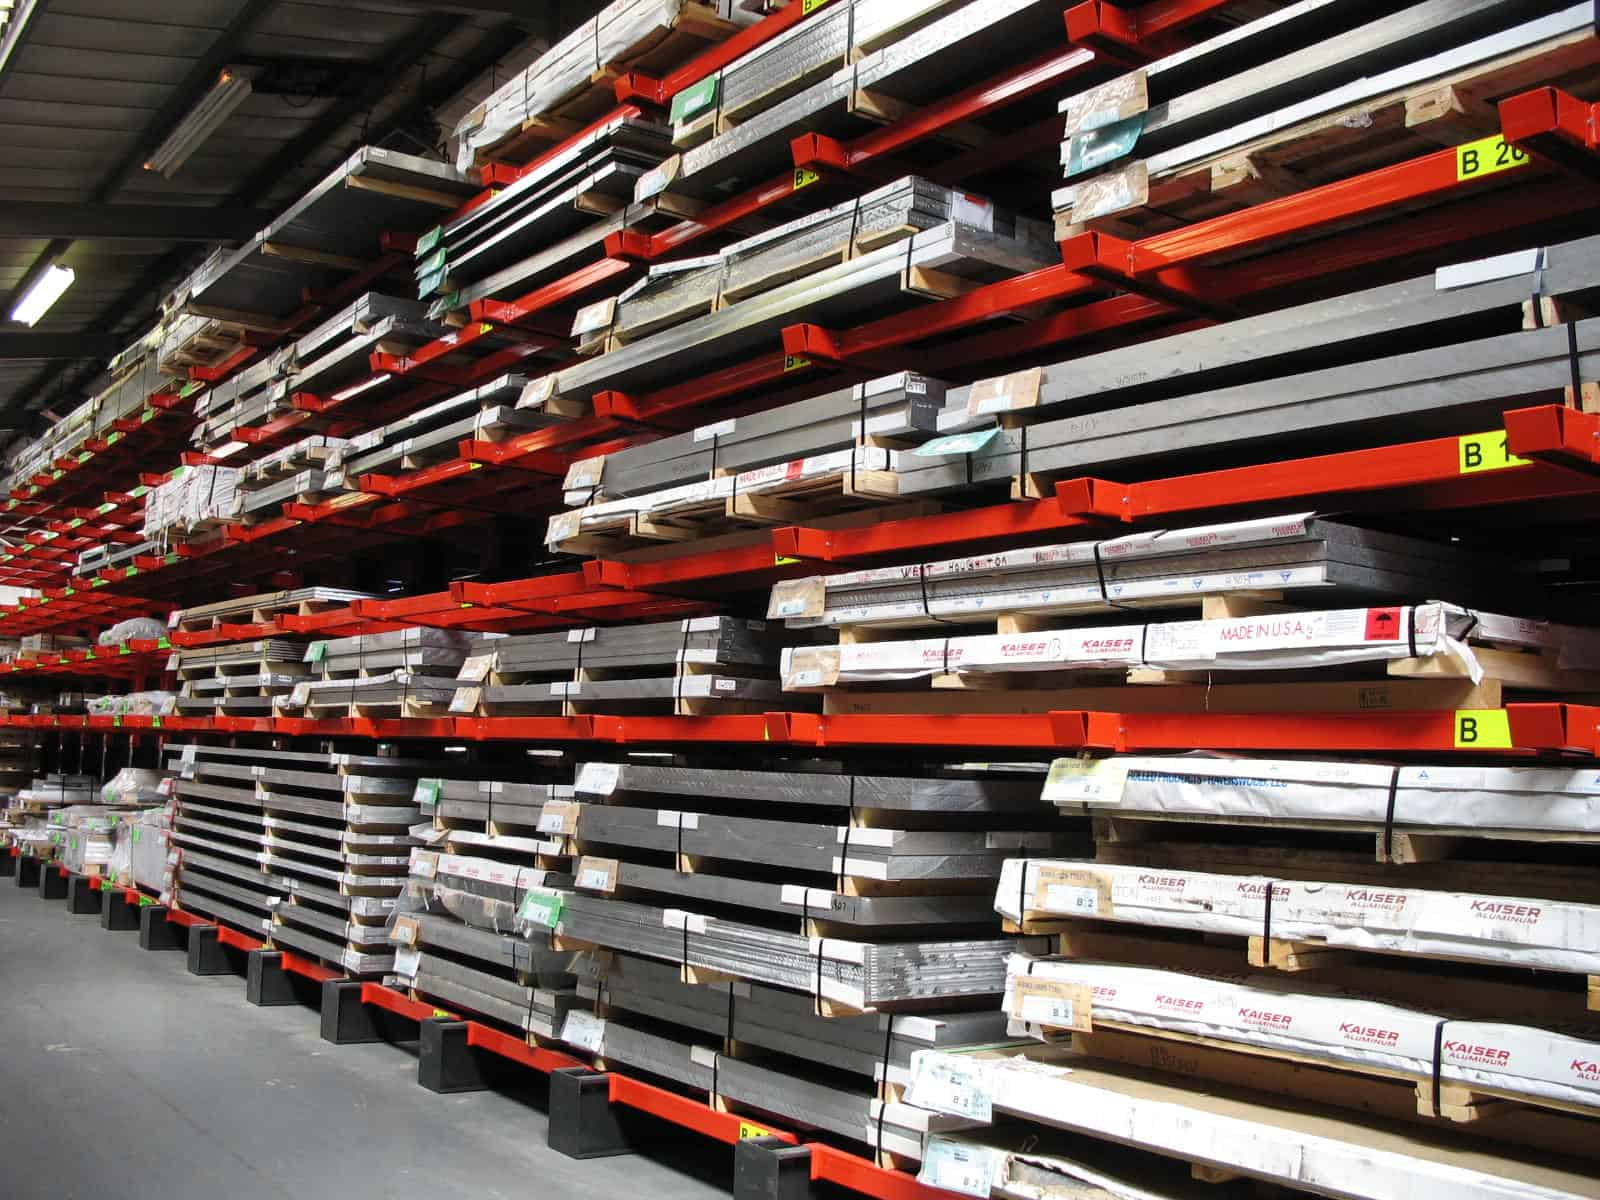 Cantilever Racking with additional Rail Supports for Heavy Duty Steel Sheet Materials storage